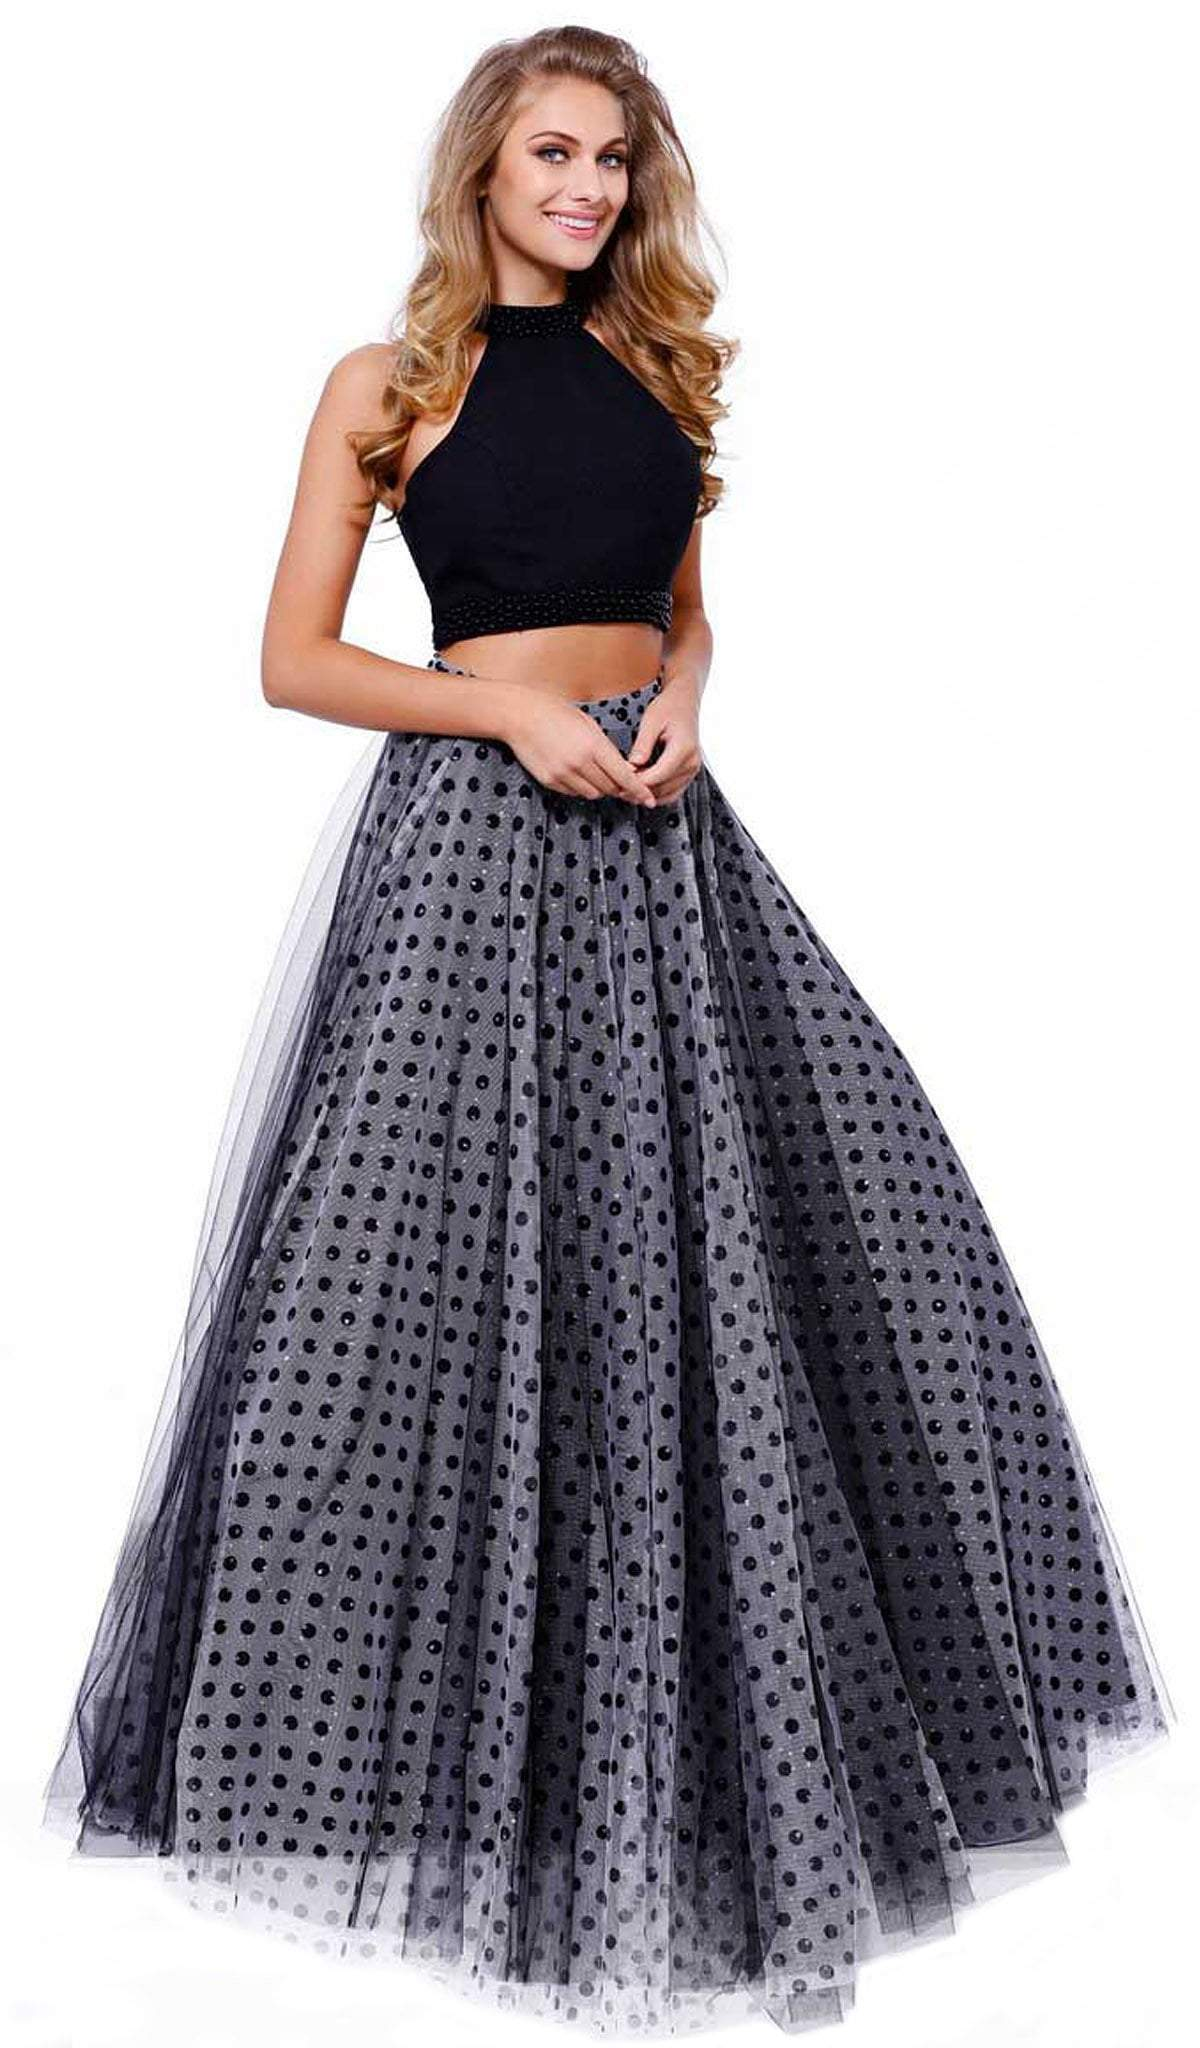 Nox Anabel - Two-Piece Halter Polka Dot Printed Gown 8204SC